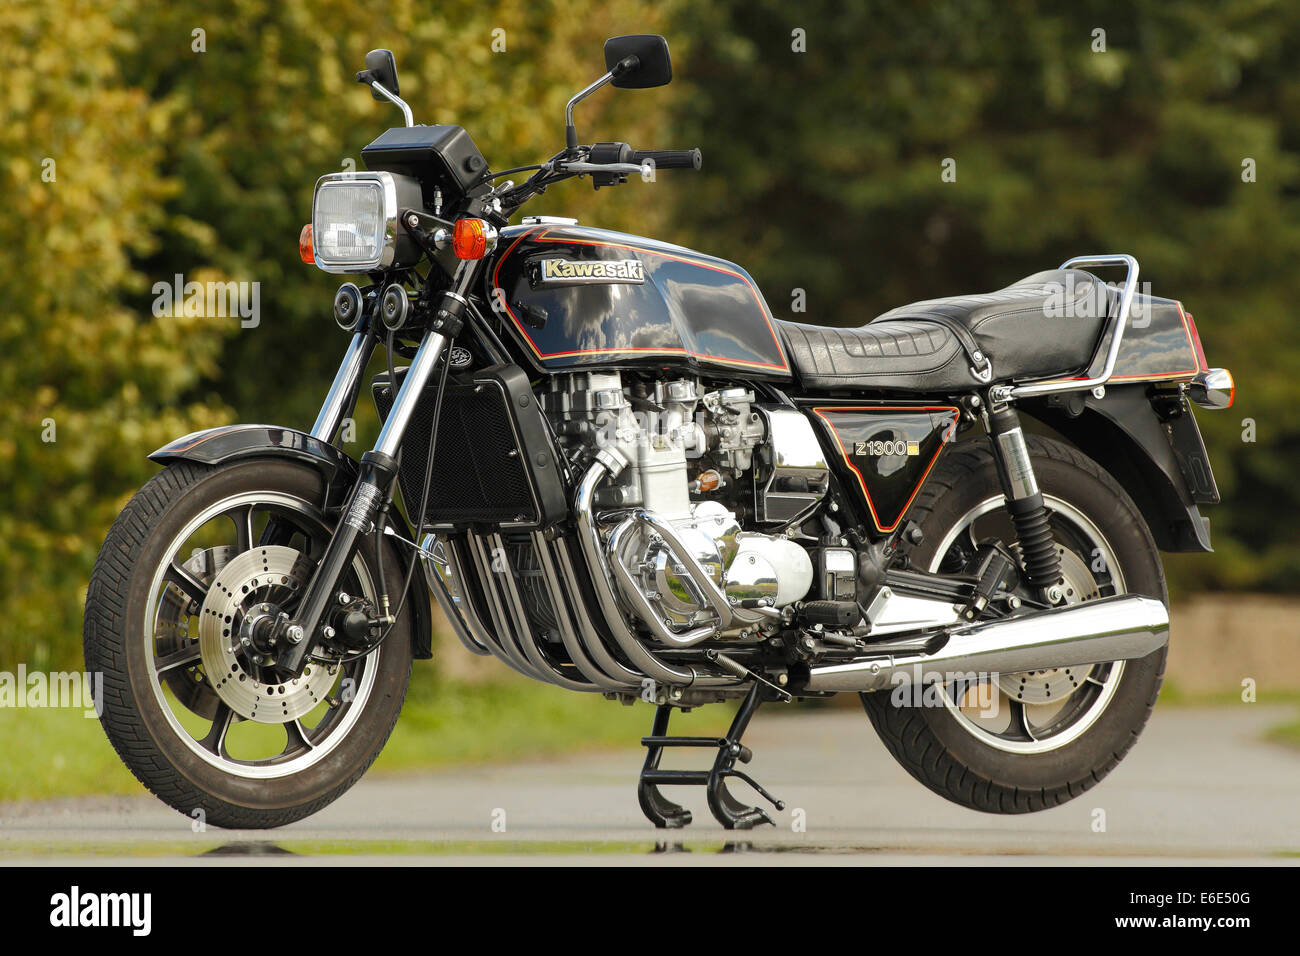 Motorcycle, Kawasaki Z1300 Stock Photo: 72840672 - Alamy